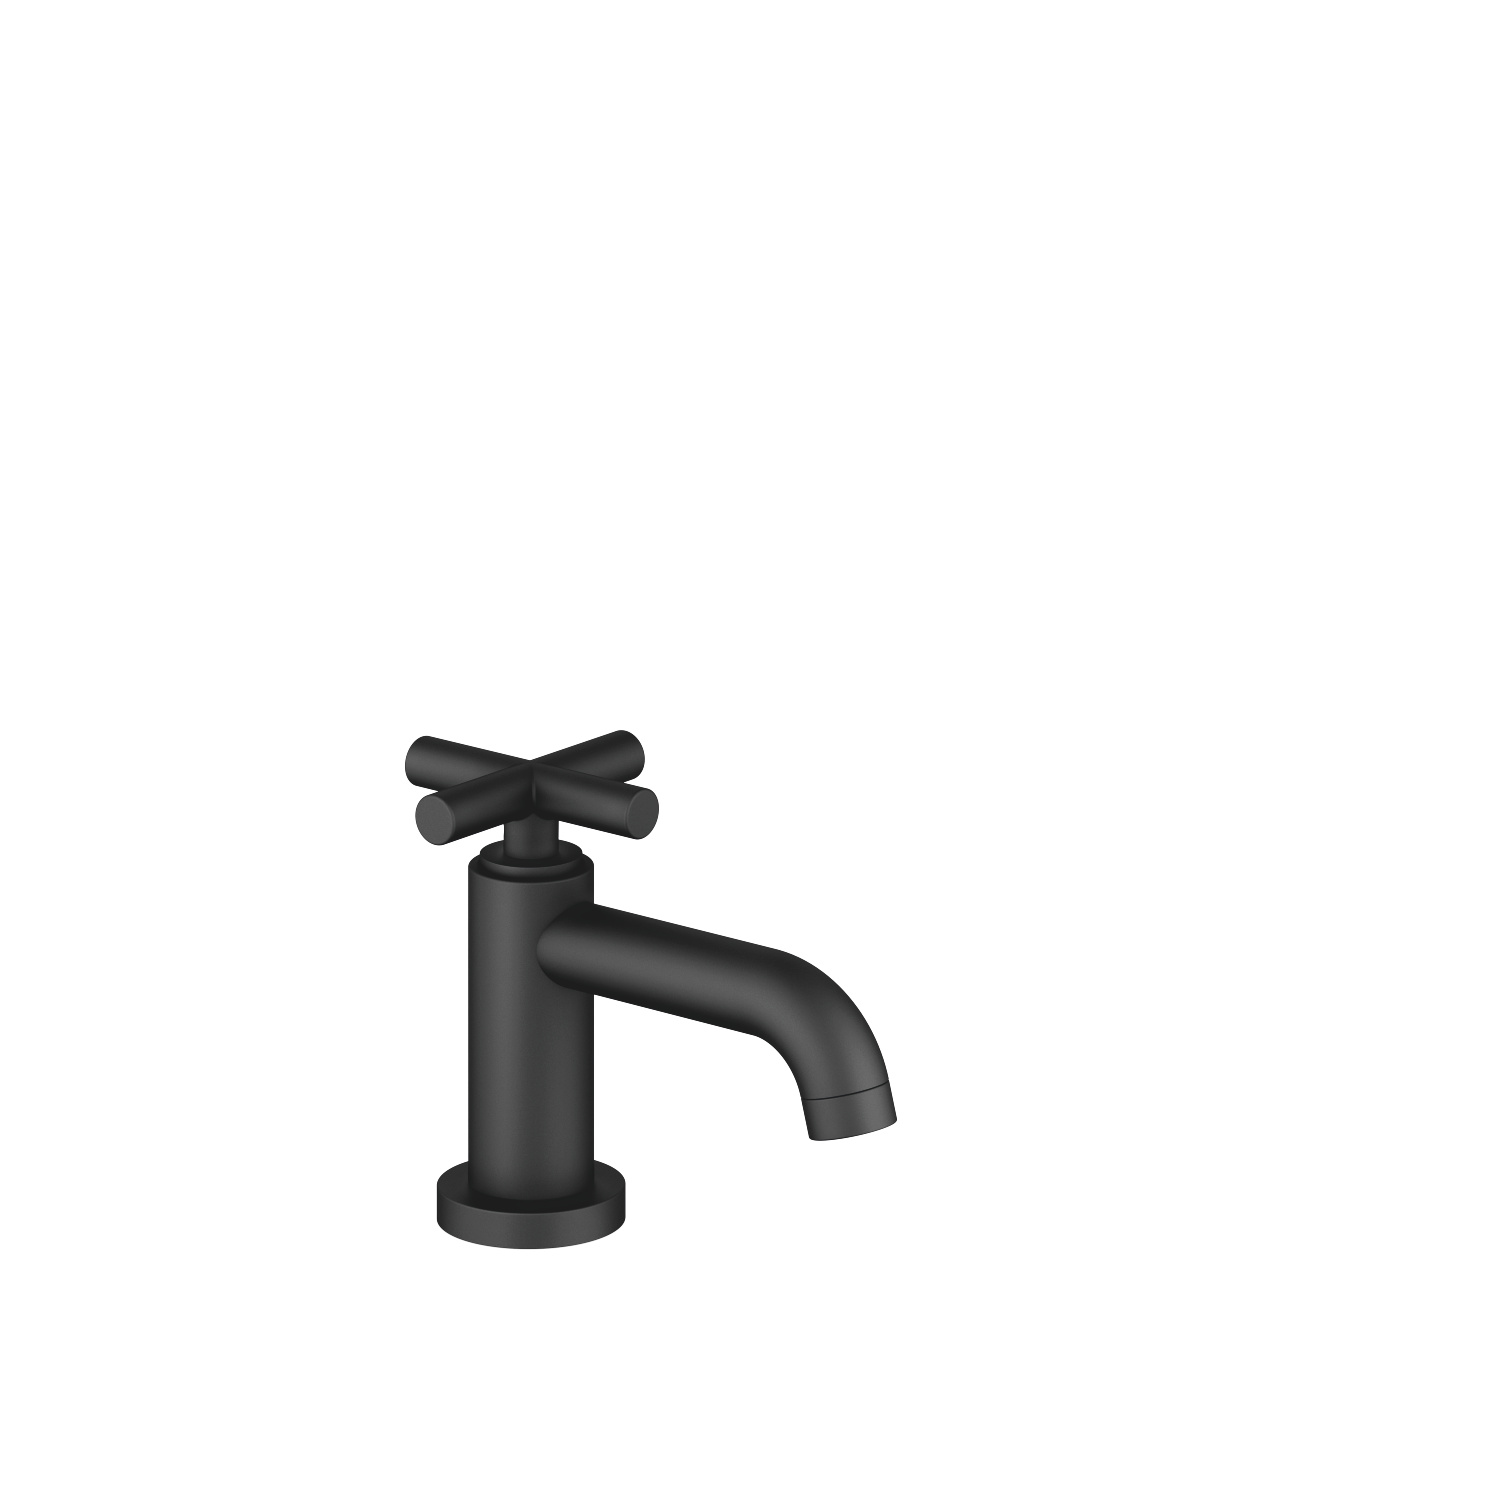 Pillar tap cold water - matt black